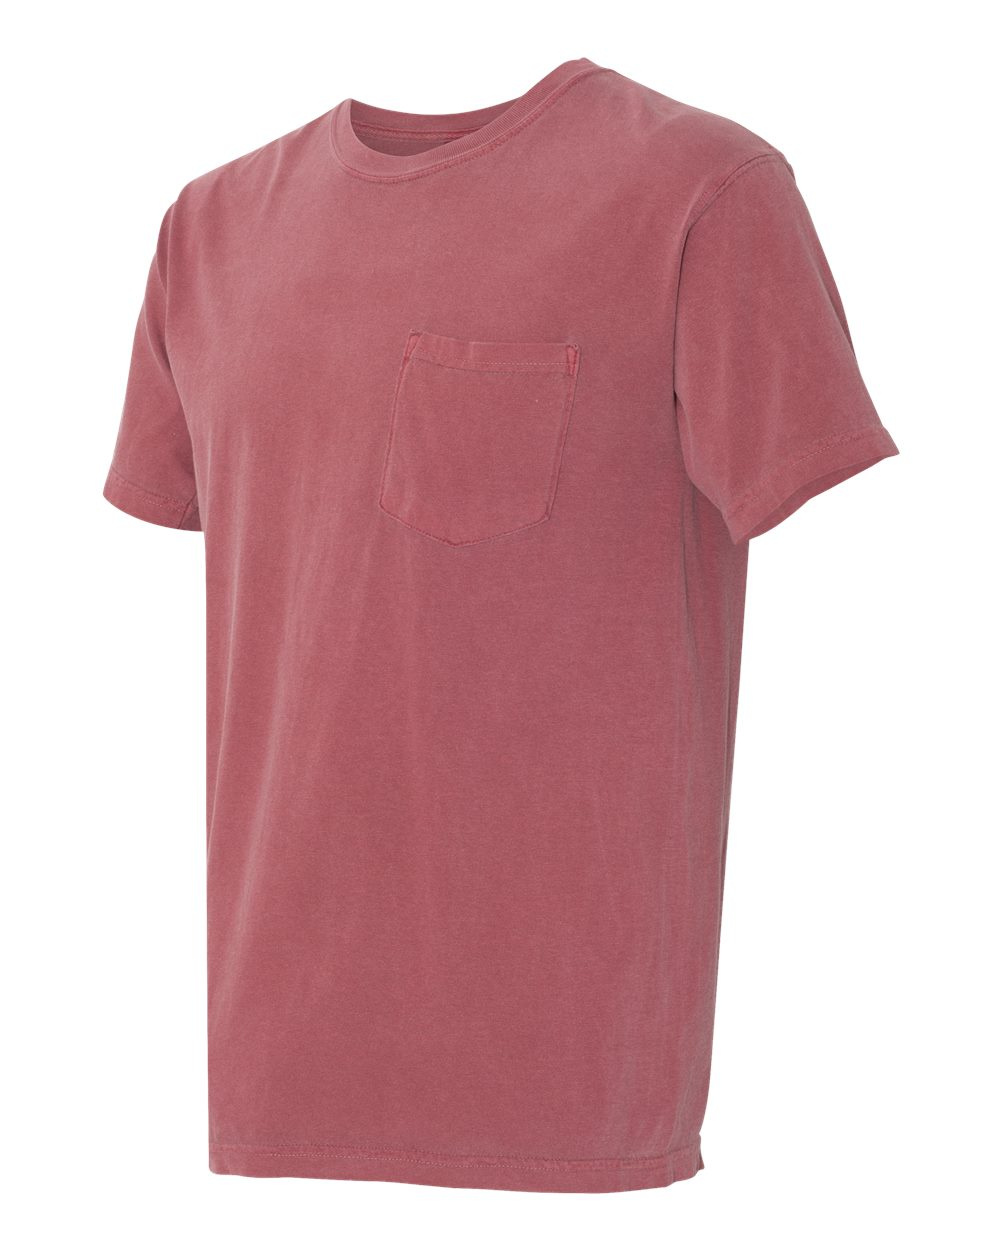 Comfort-Colors-Men-039-s-6-1-oz-Garment-Dyed-Pocket-T-Shirt-6030CC-S-3XL thumbnail 15